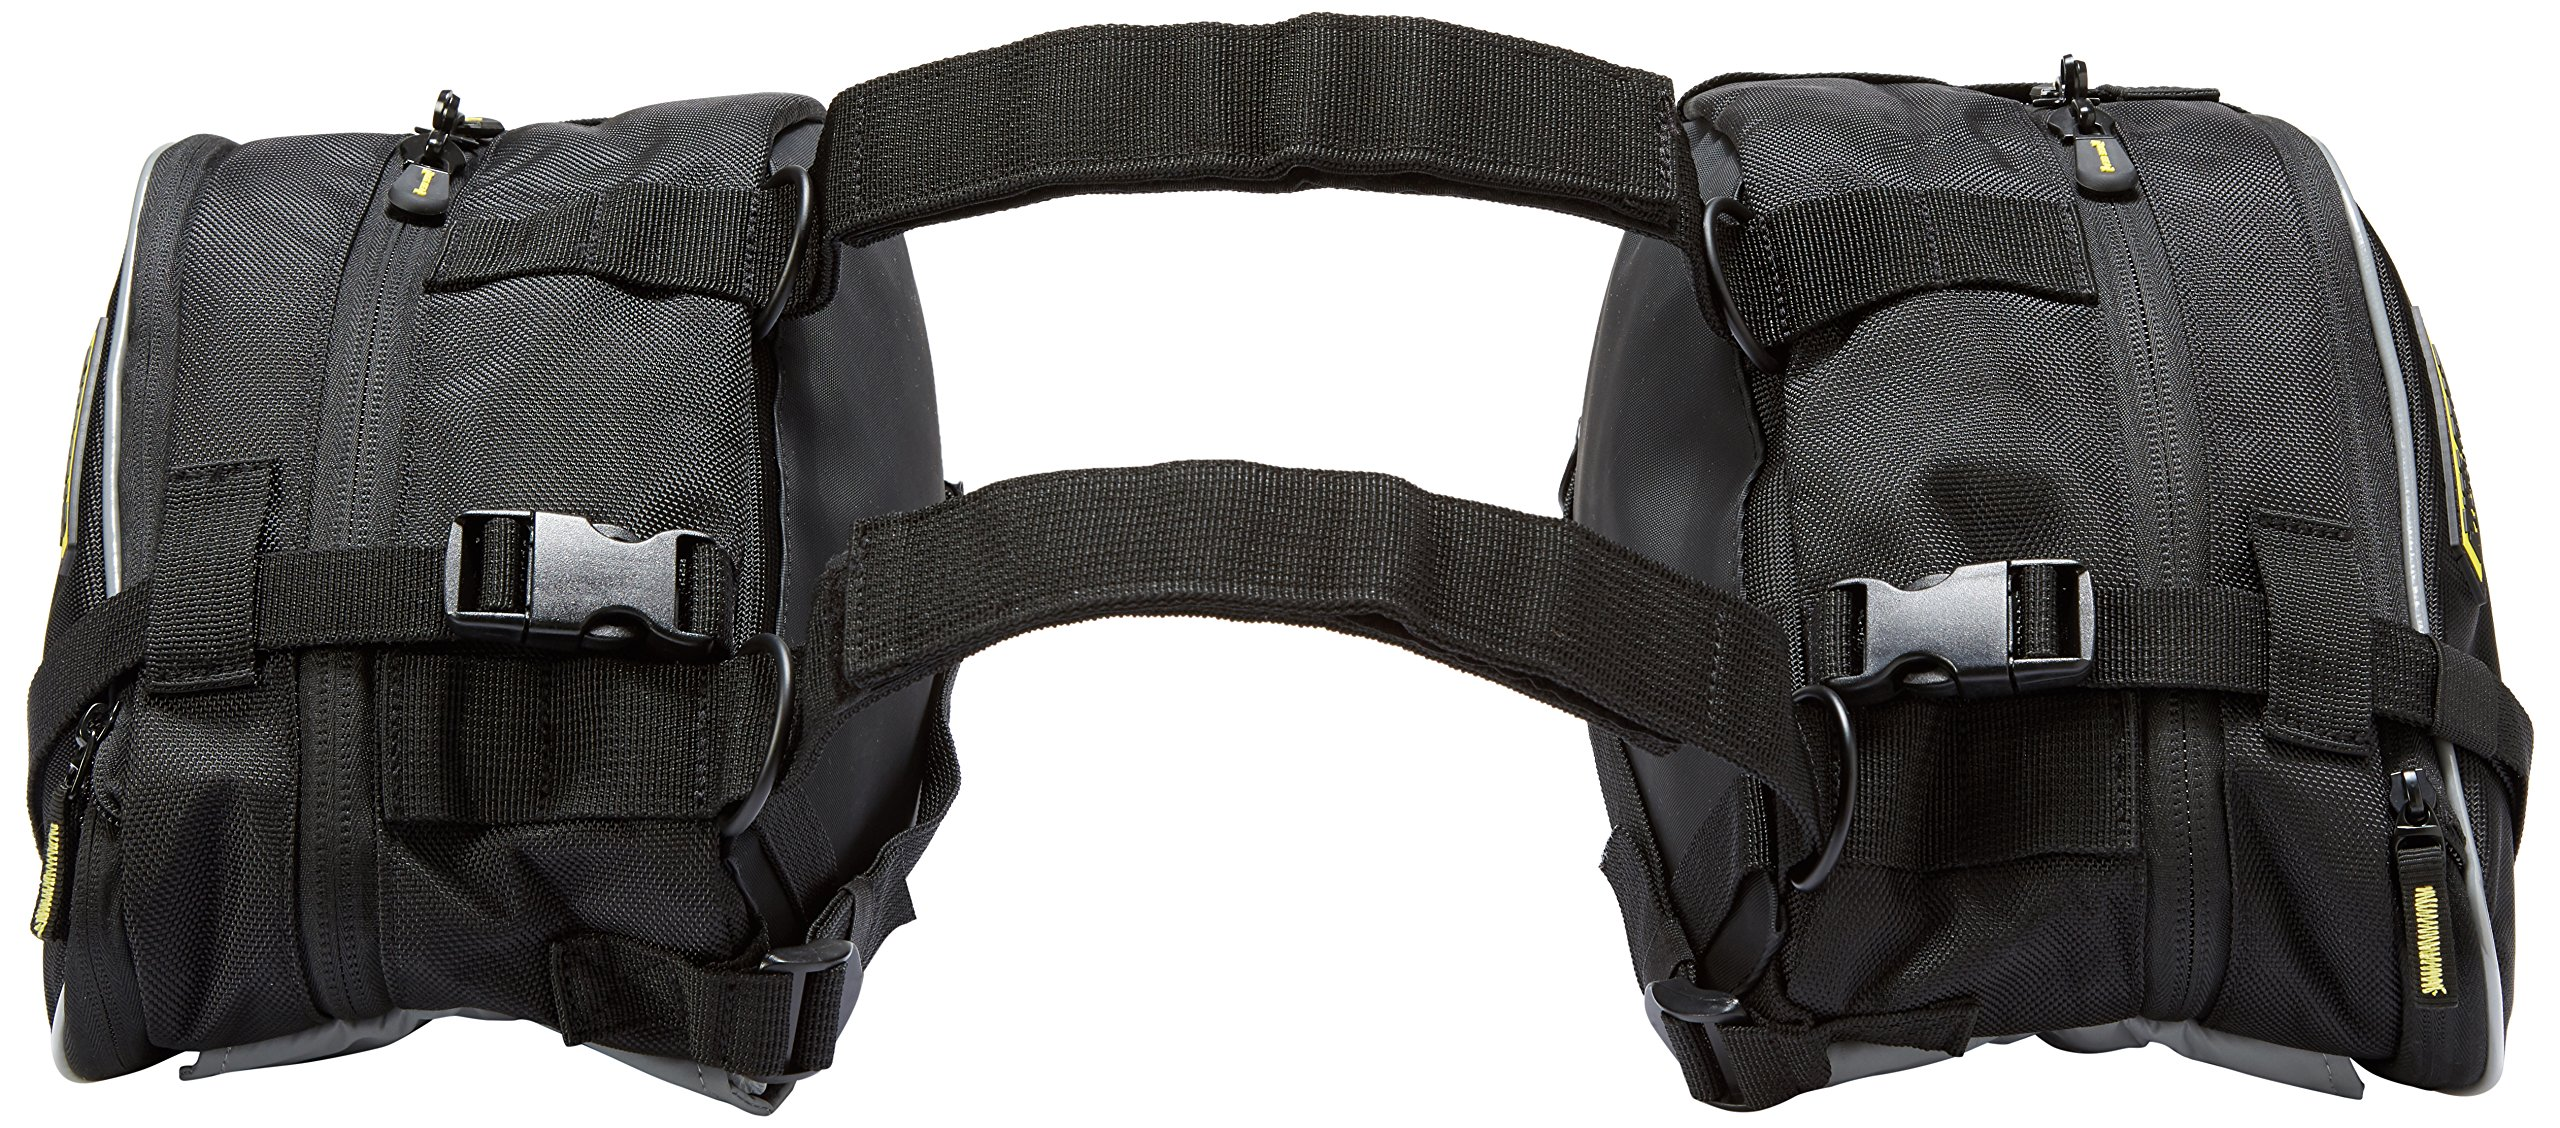 Nelson-Rigg RG-020 Black Dual Sport Motorcycle Saddlebag by Nelson-Rigg (Image #3)